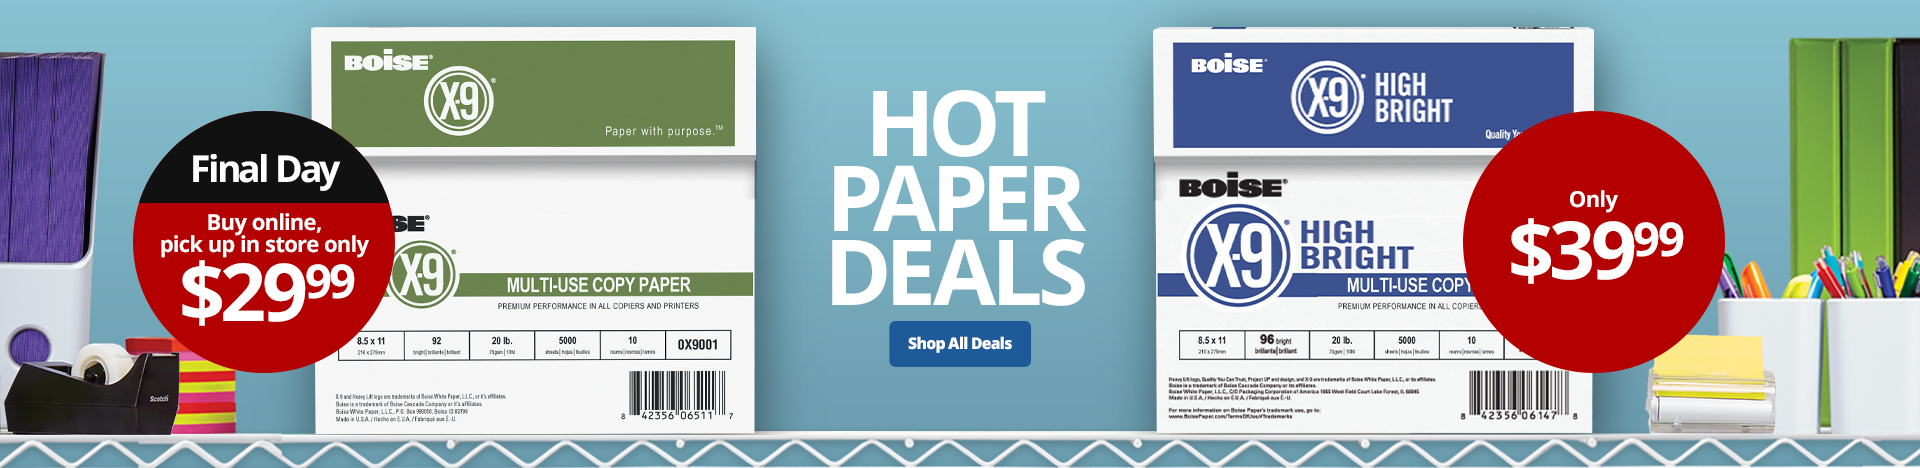 Paper For All Your Needs - Buy Online Pick Up In Store Boise X-9 Copy Paper, 10 Ream Case Now $29.99